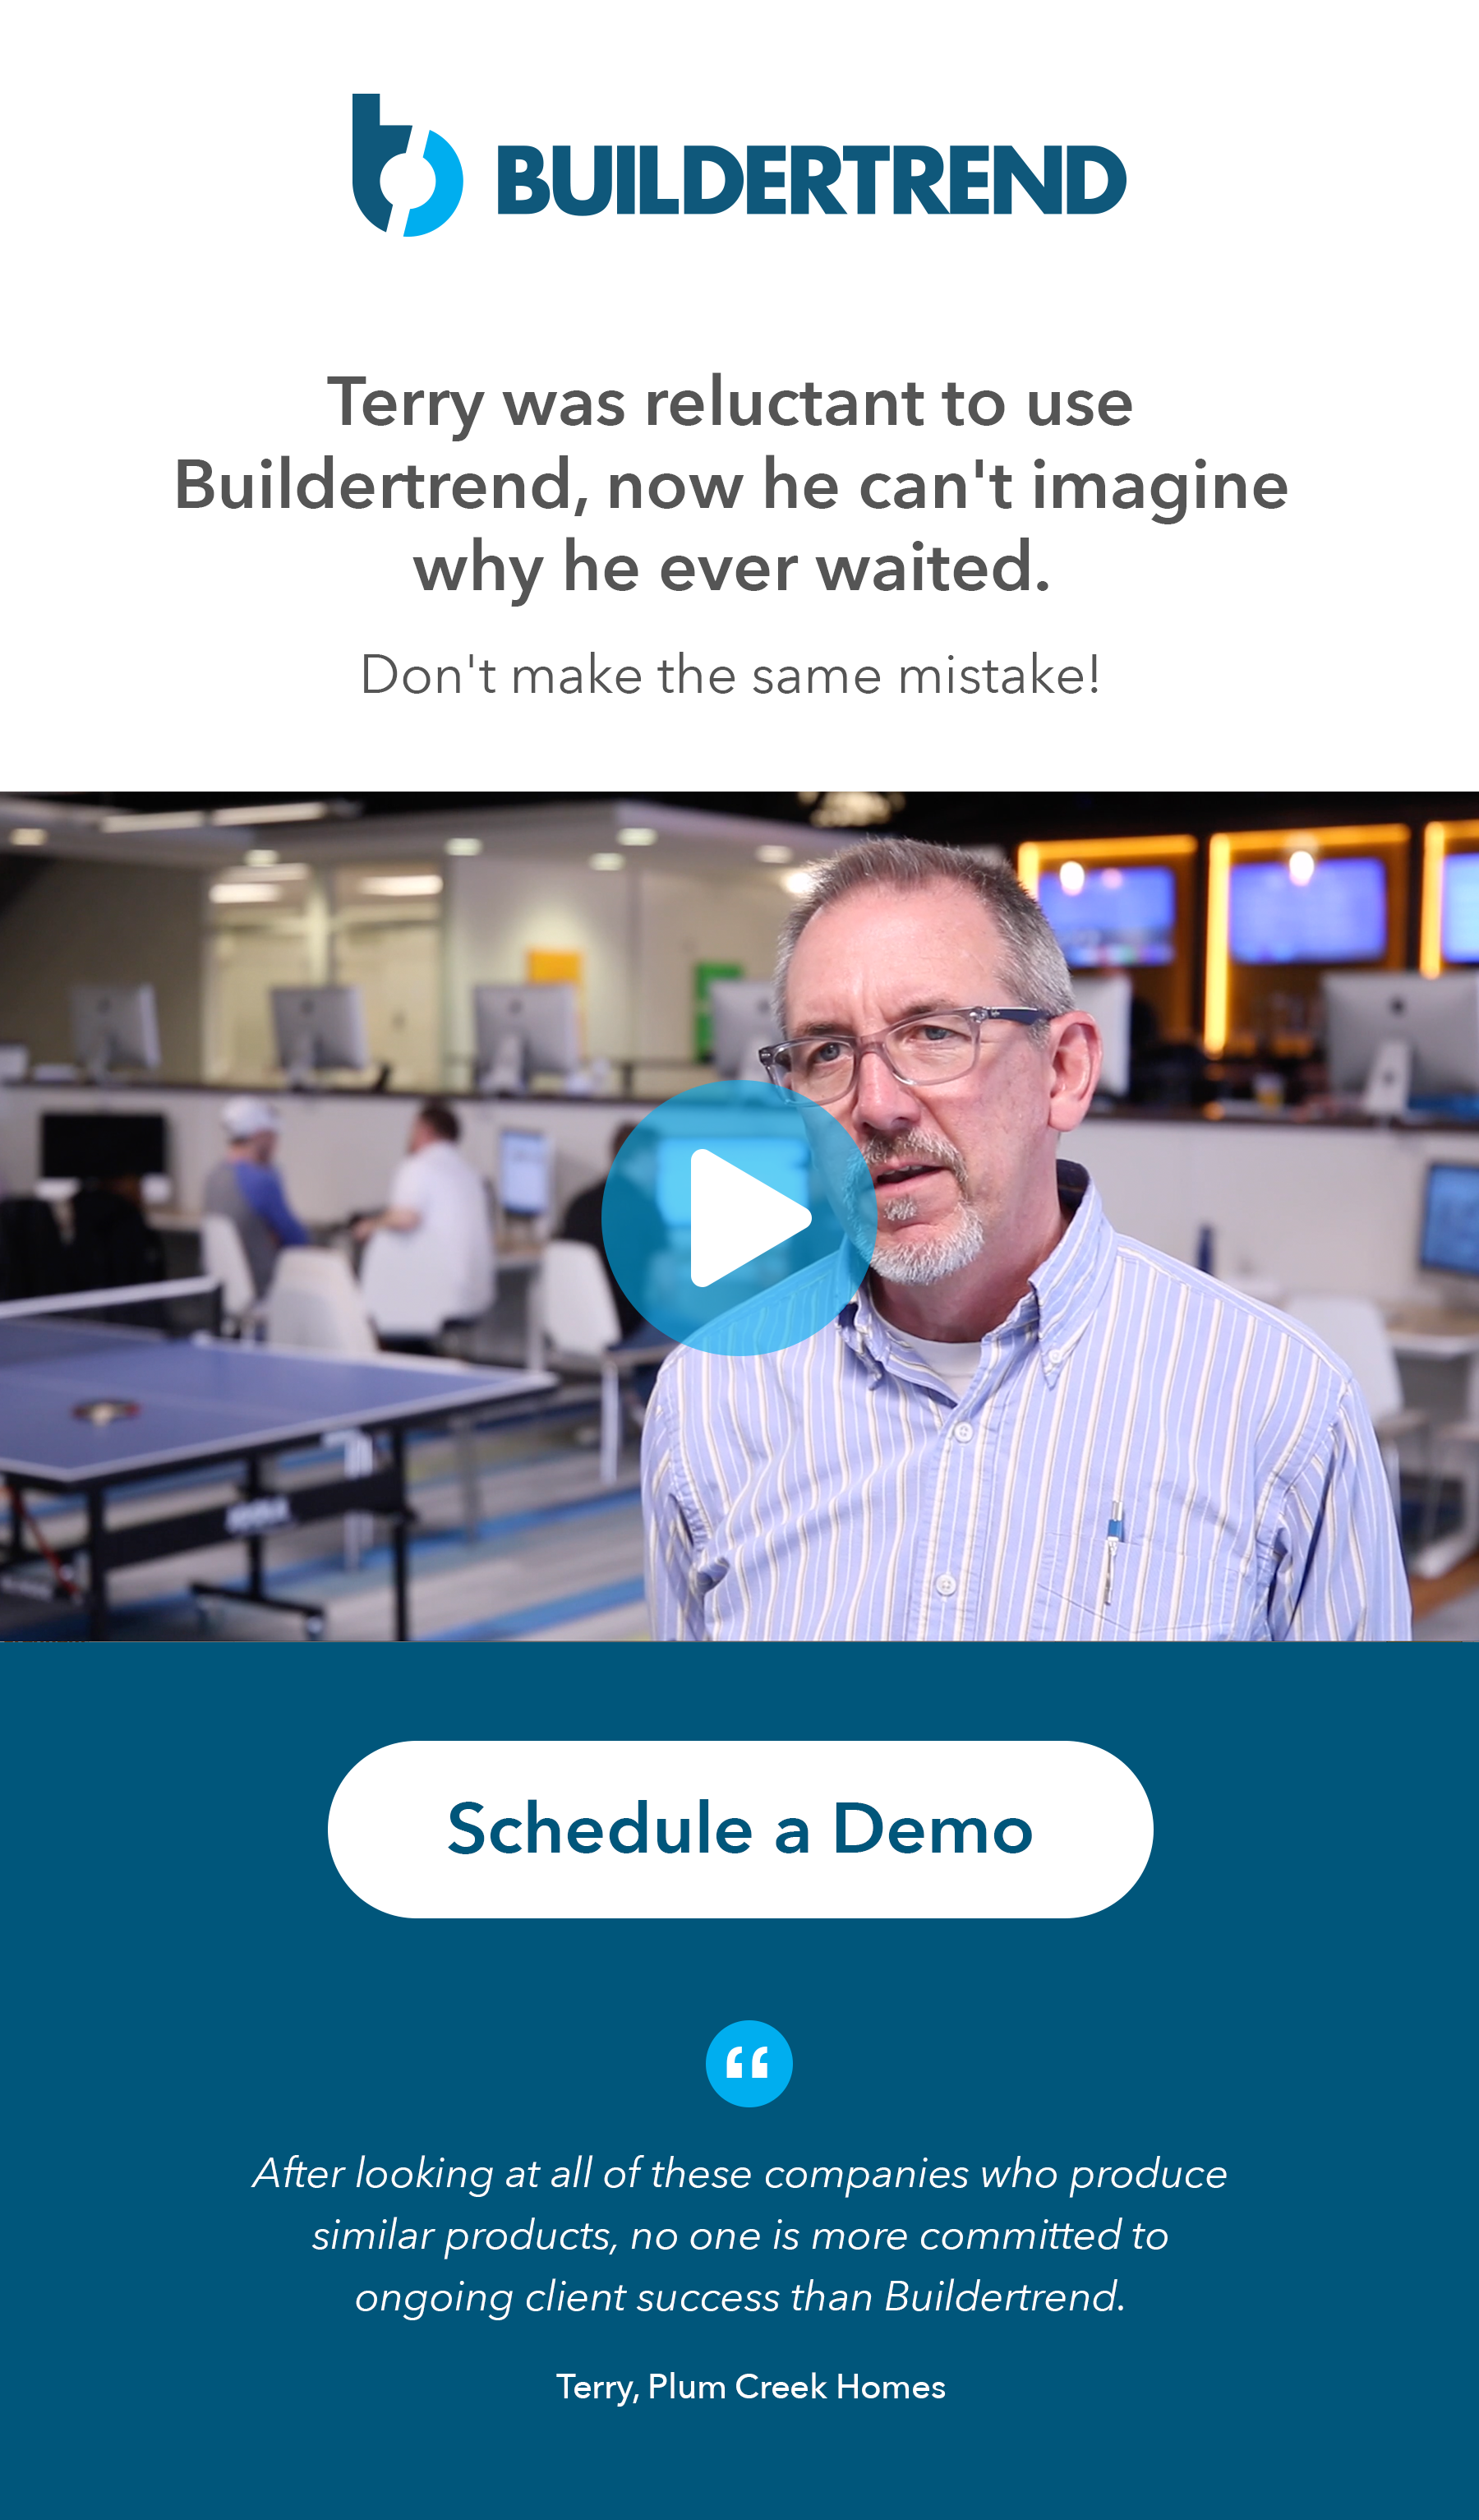 terry was reluctant to use Buildertrend - now he can't imagine why he ever waited - schedule your demo today